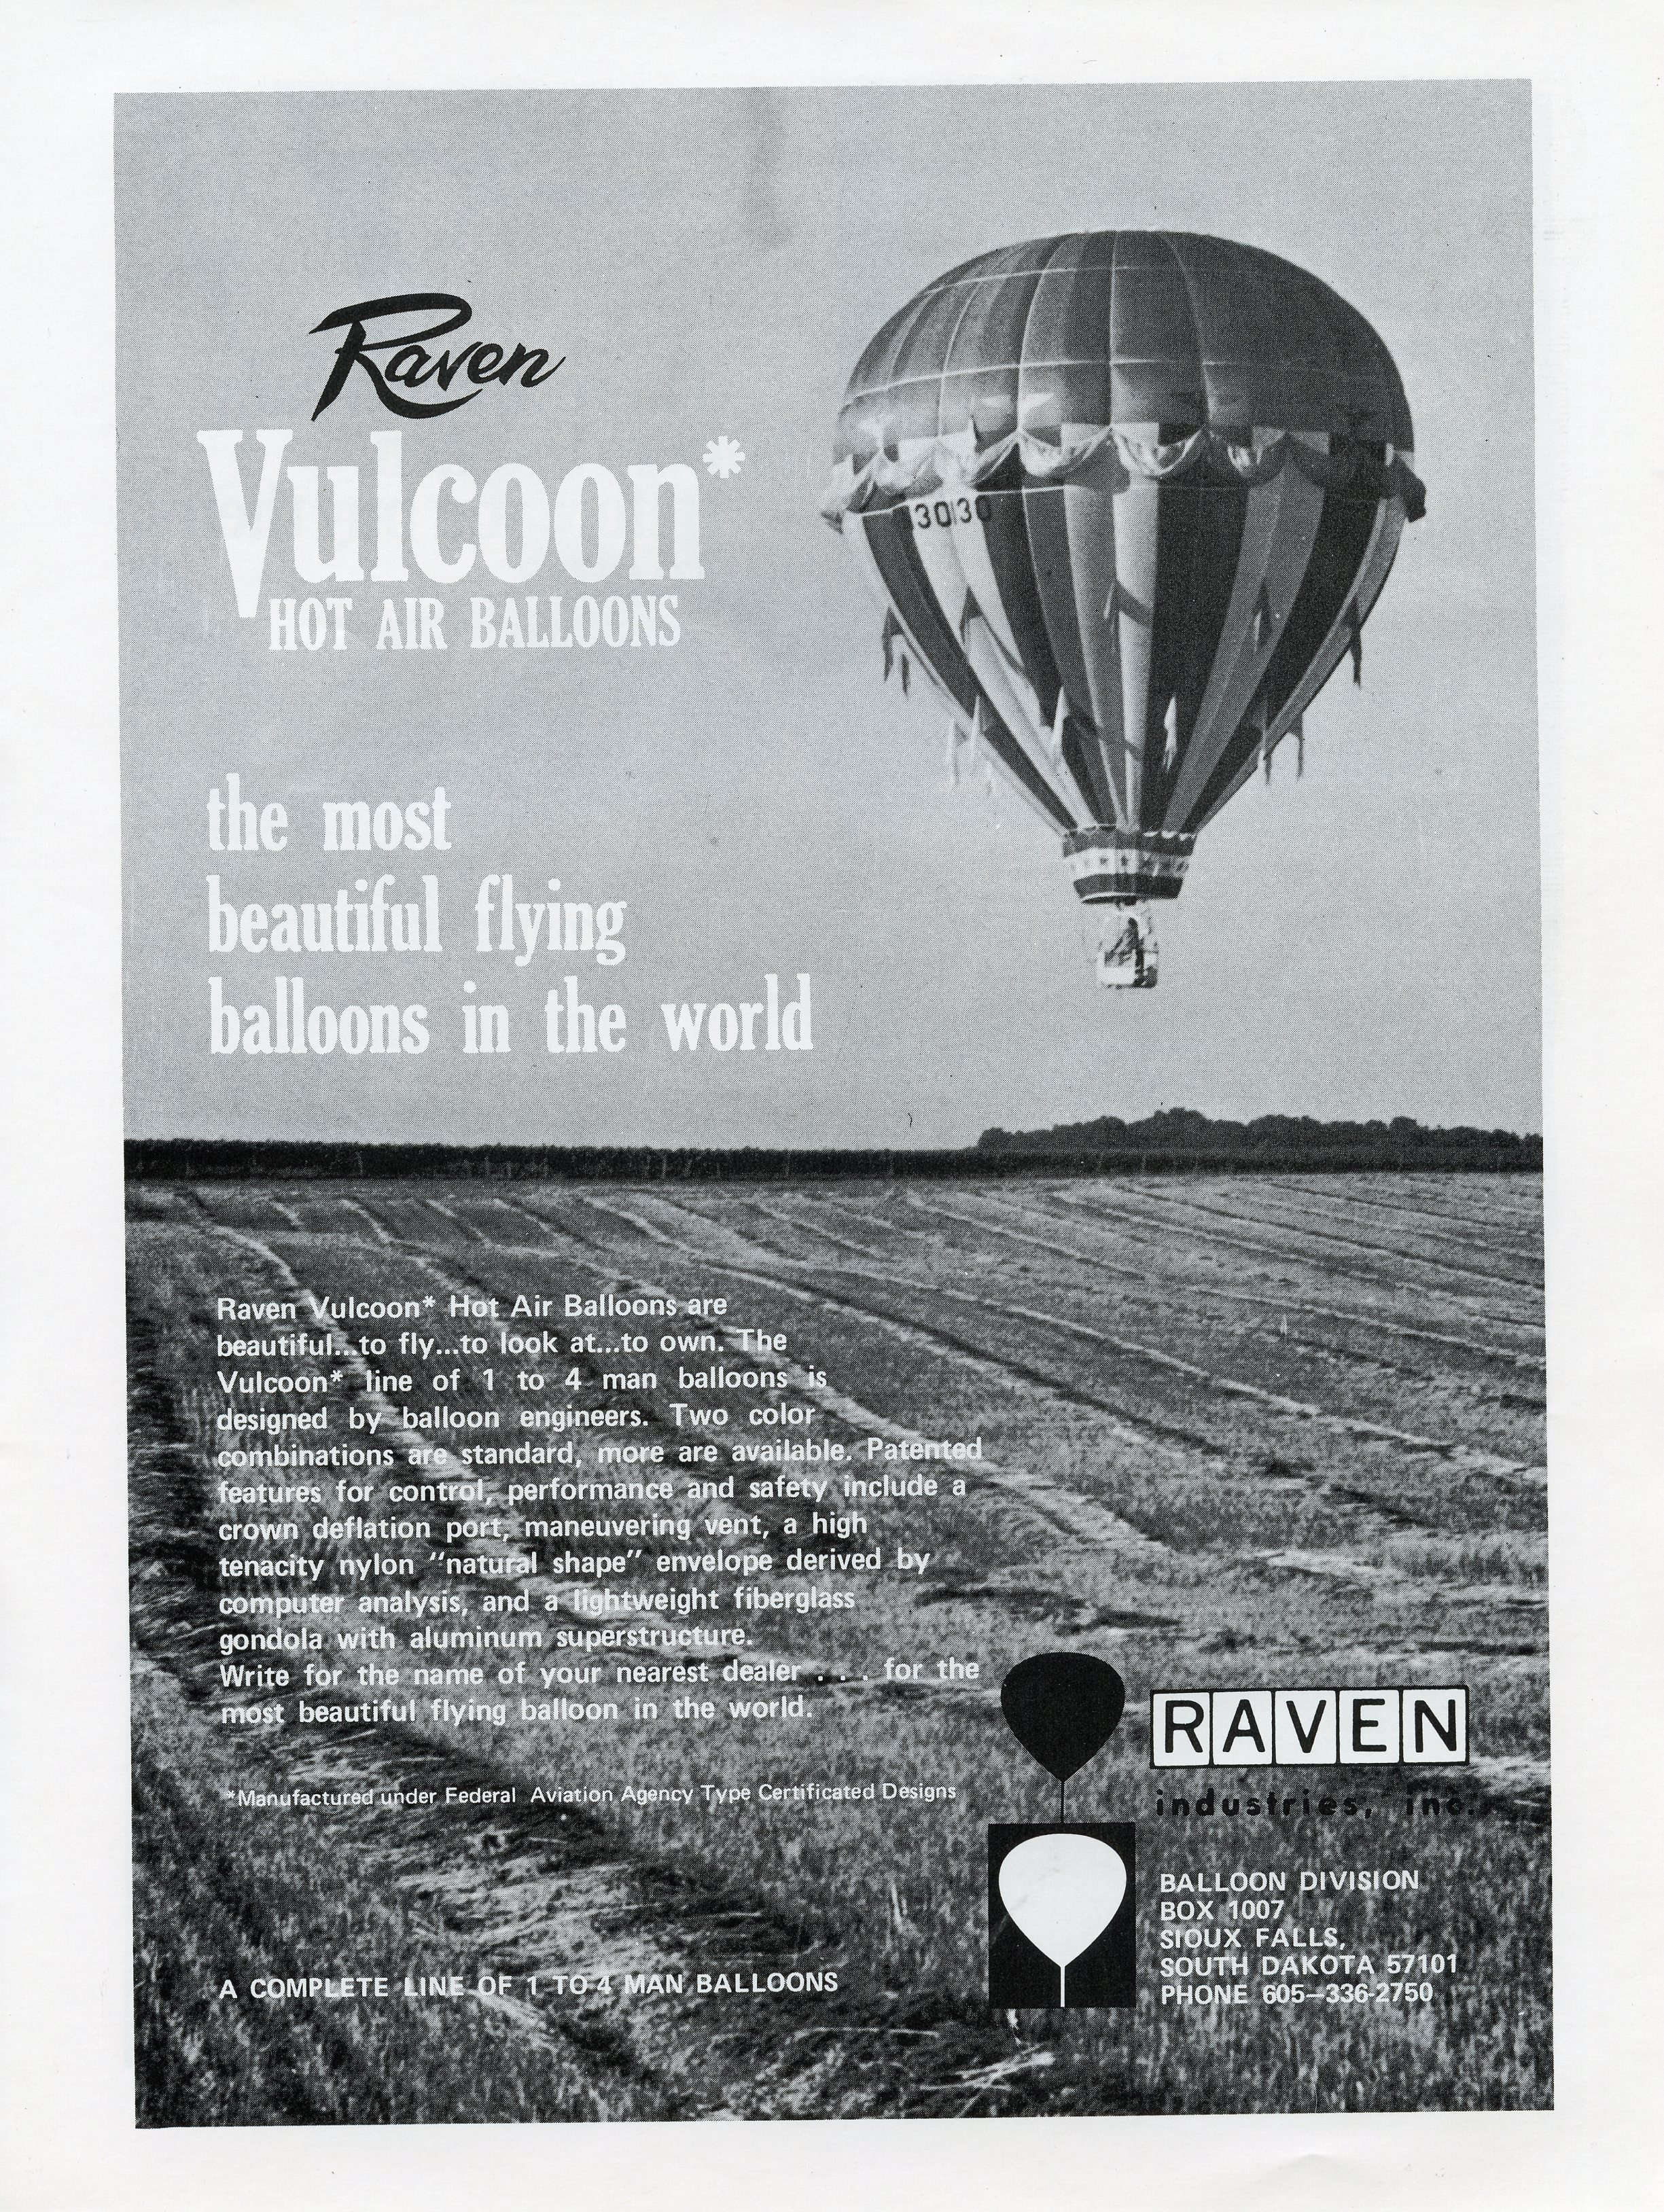 First_Texas_Hot_Air_Balloon_Race-11.jpg